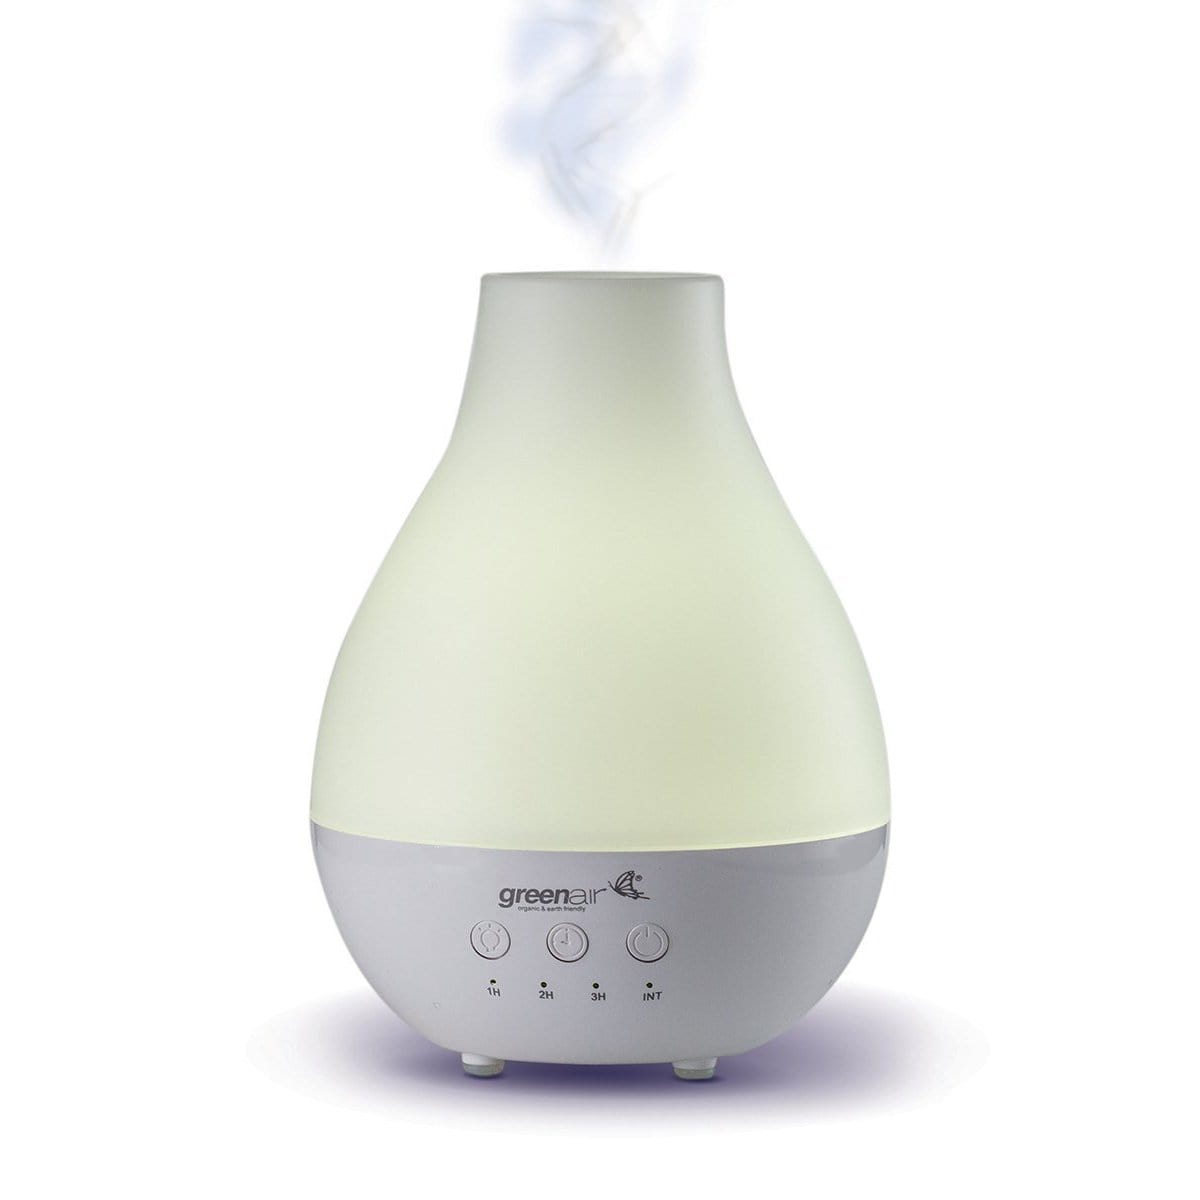 GreenAir Breathe Aromatherapy Diffuser-Diffusers-Ice 'N' Fire